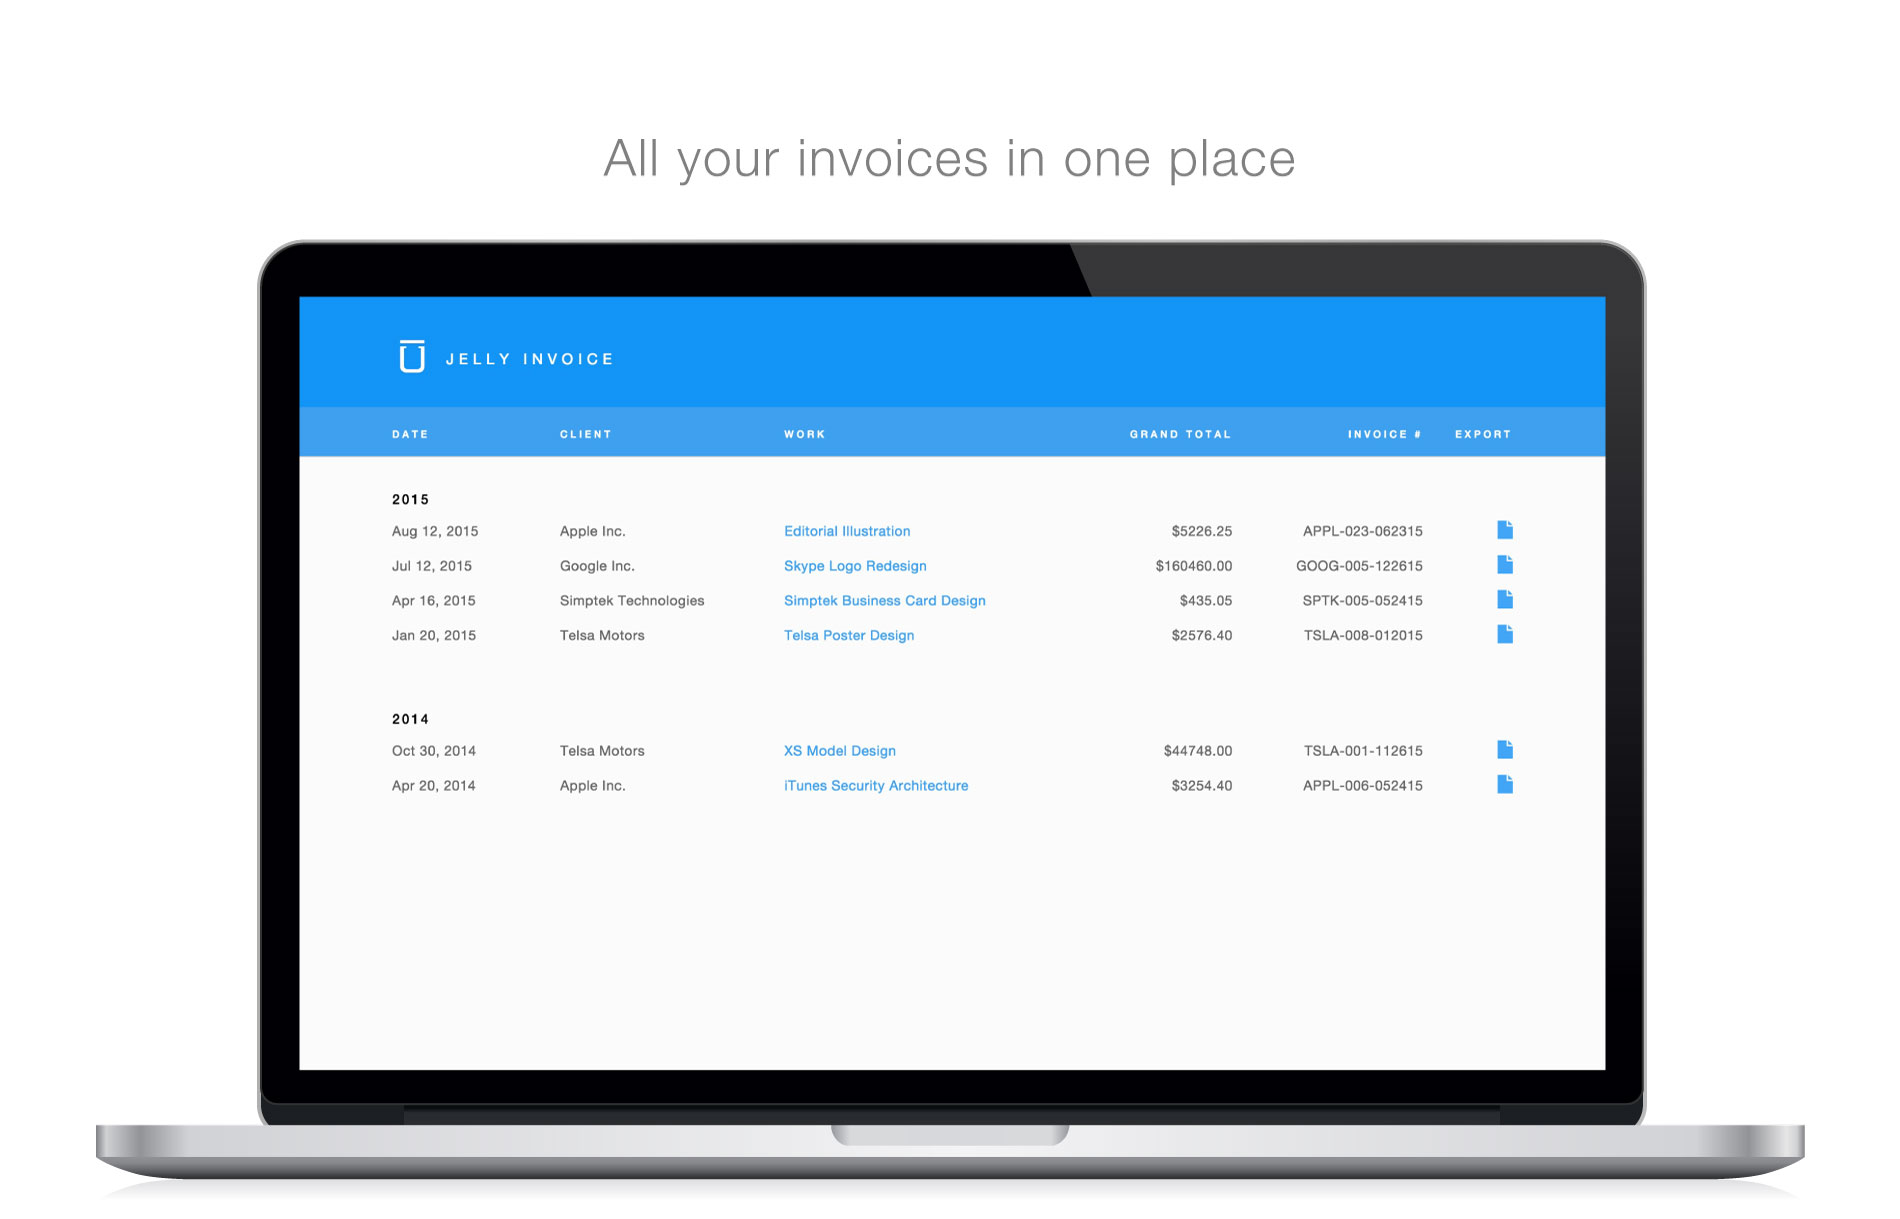 Preview of Jelly Invoice's Index of Invoices